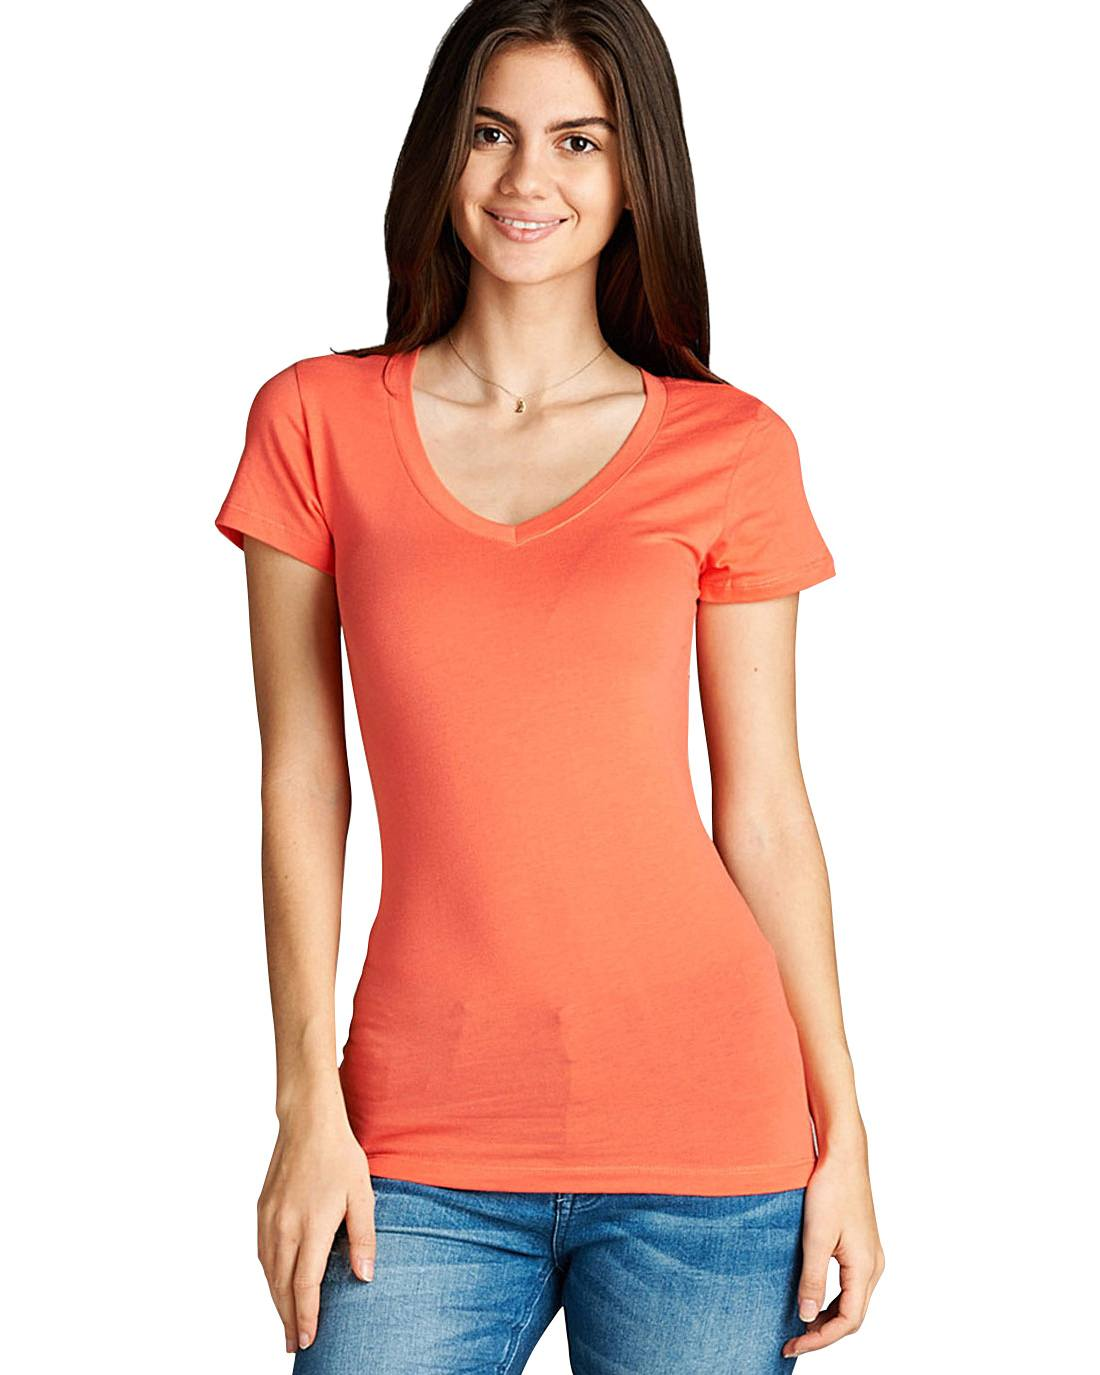 Stretchy short sleeves top - the-jewelry-barn